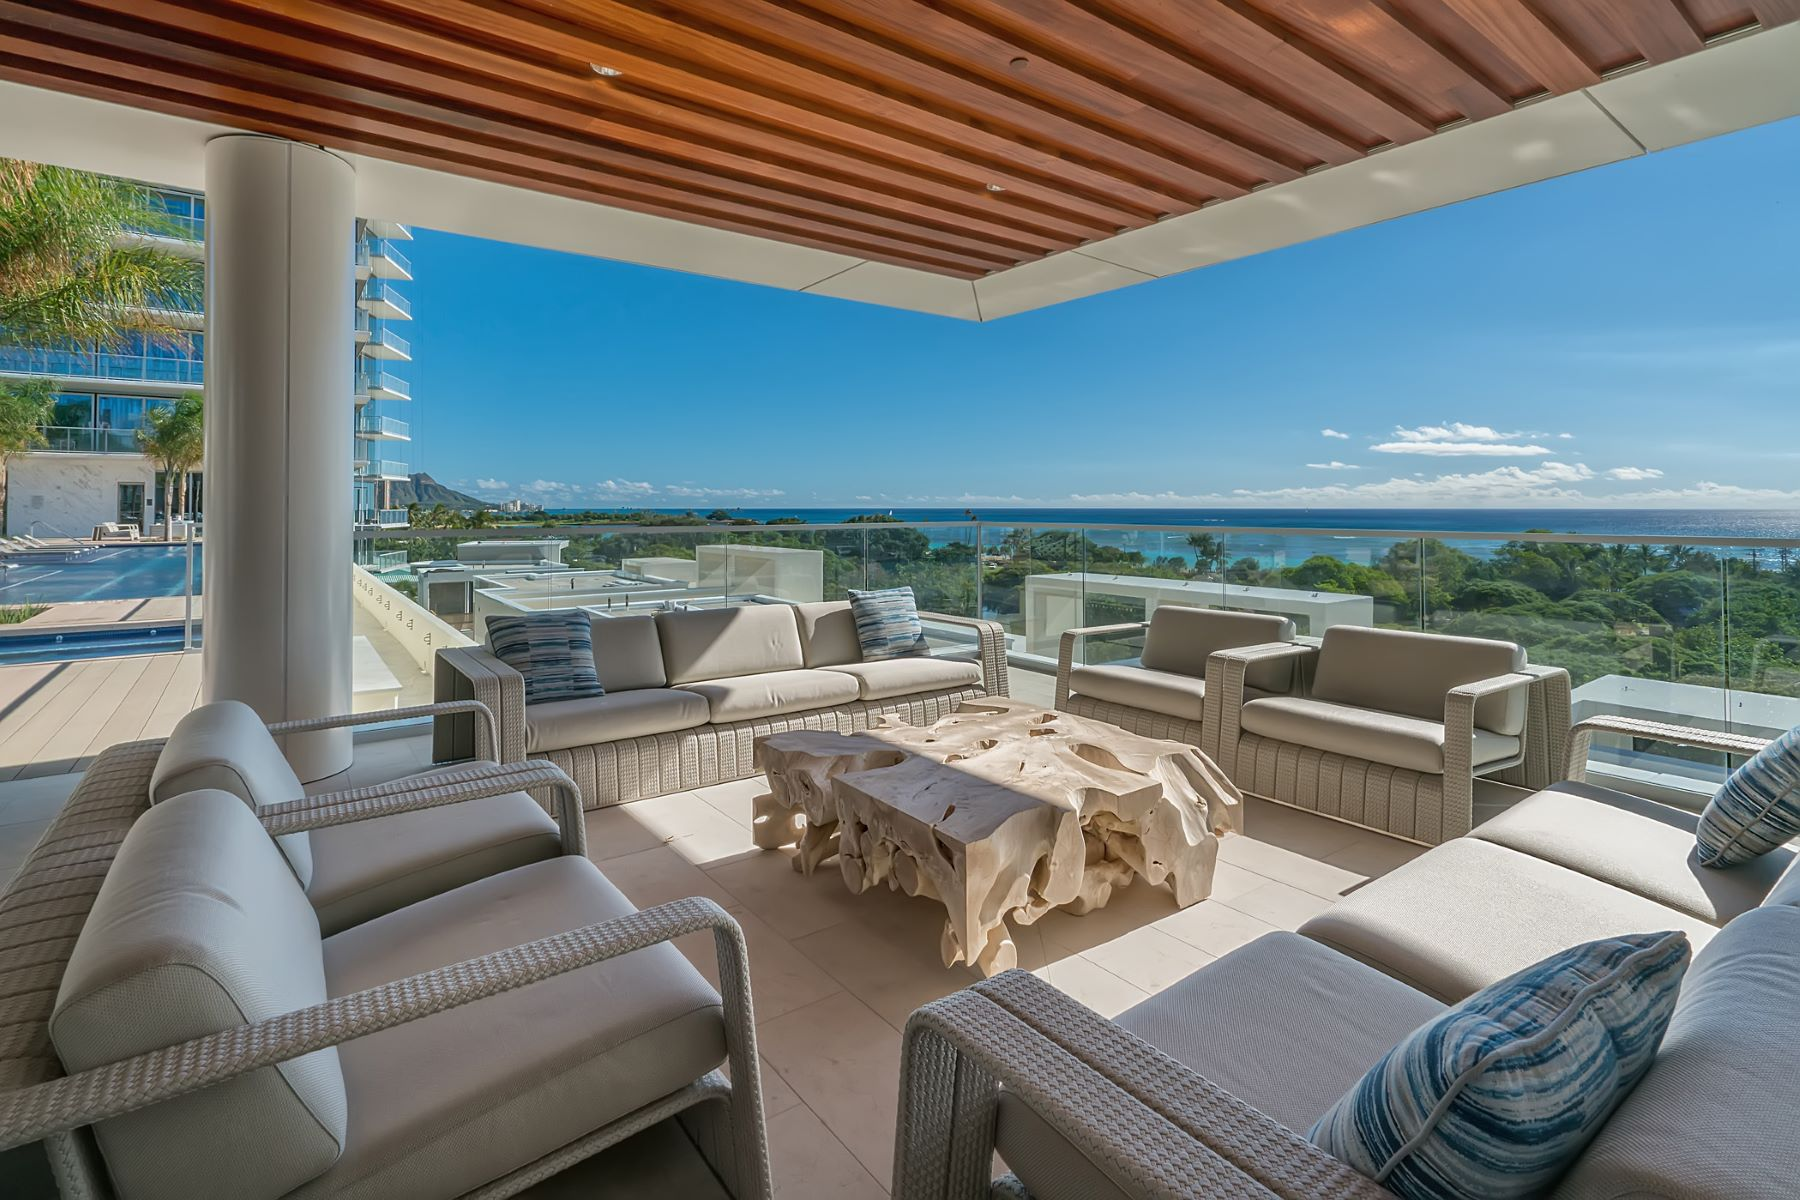 Additional photo for property listing at Sophisticated Urban Townhouse Villa 1118 Ala Moana Boulevard Villa #3 Honolulu, Hawaii 96814 United States